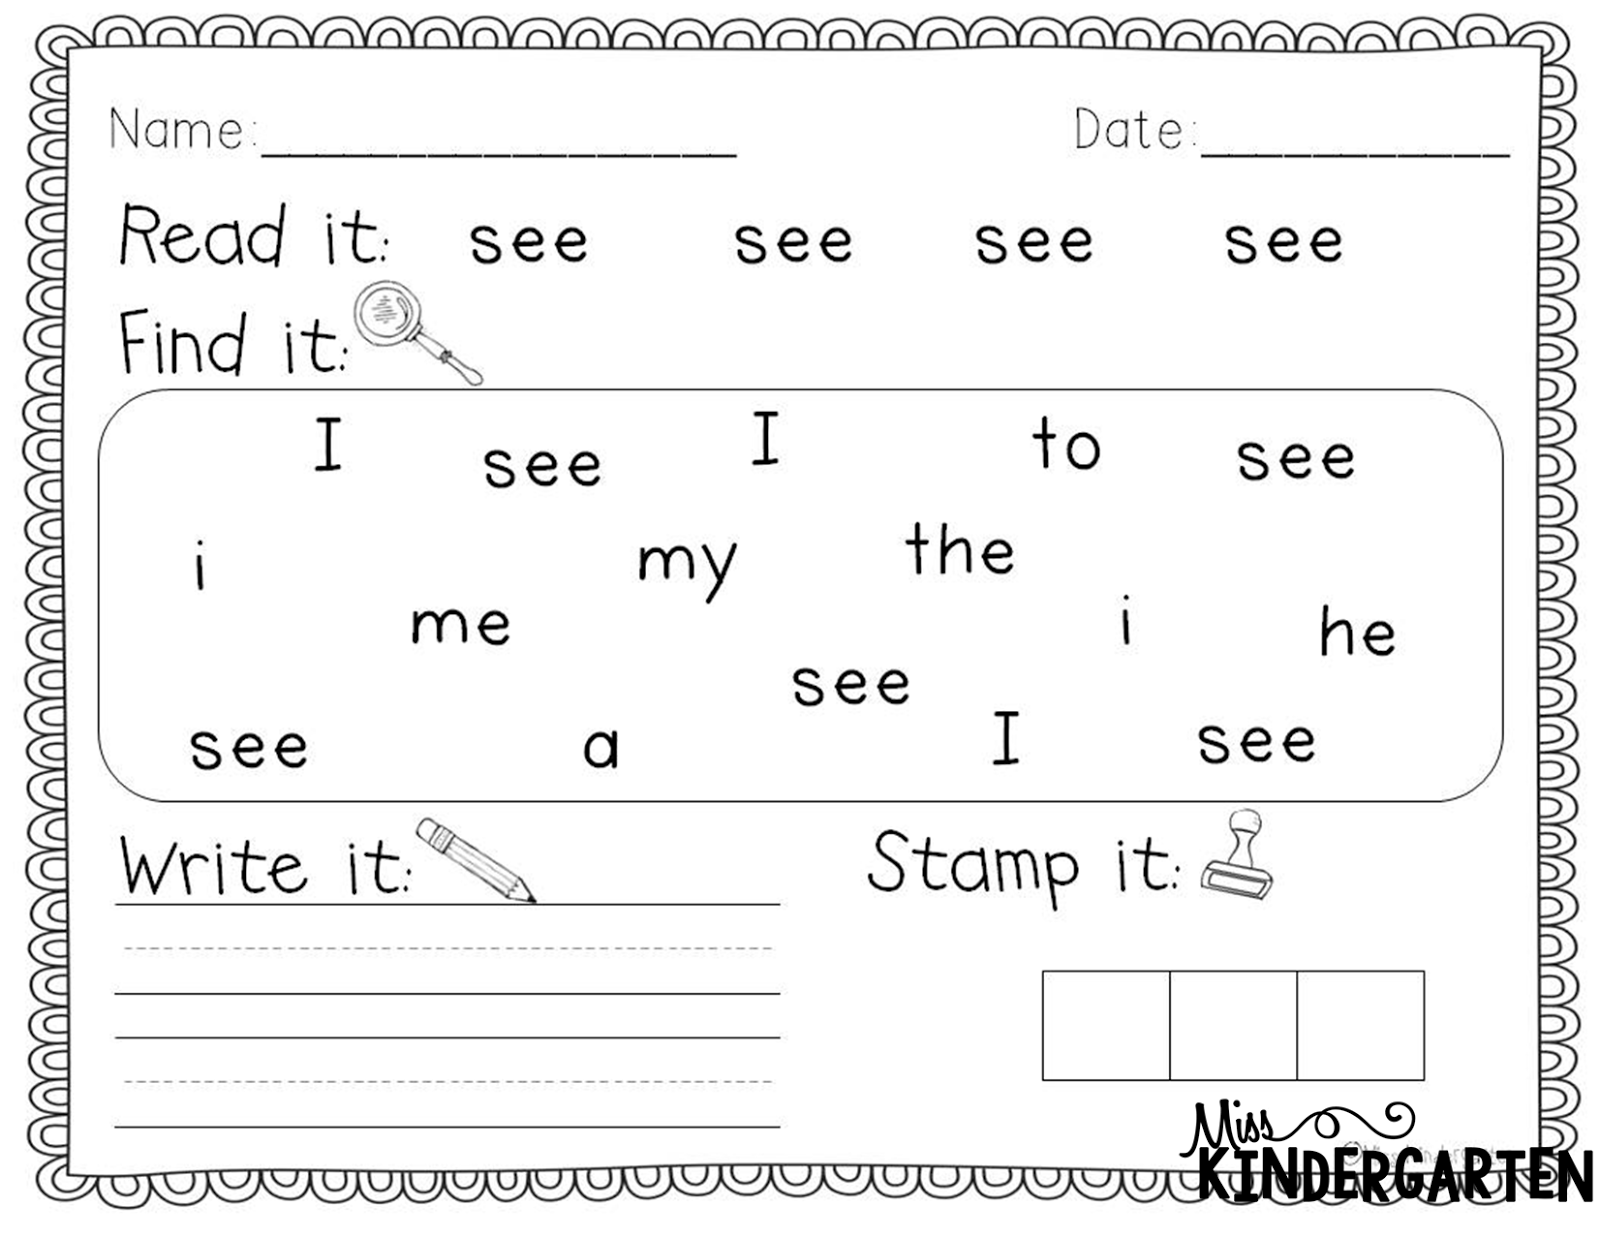 Worksheet Sight Word Worksheets sight word practice miss kindergarten httpwww teacherspayteachers comproductsight word